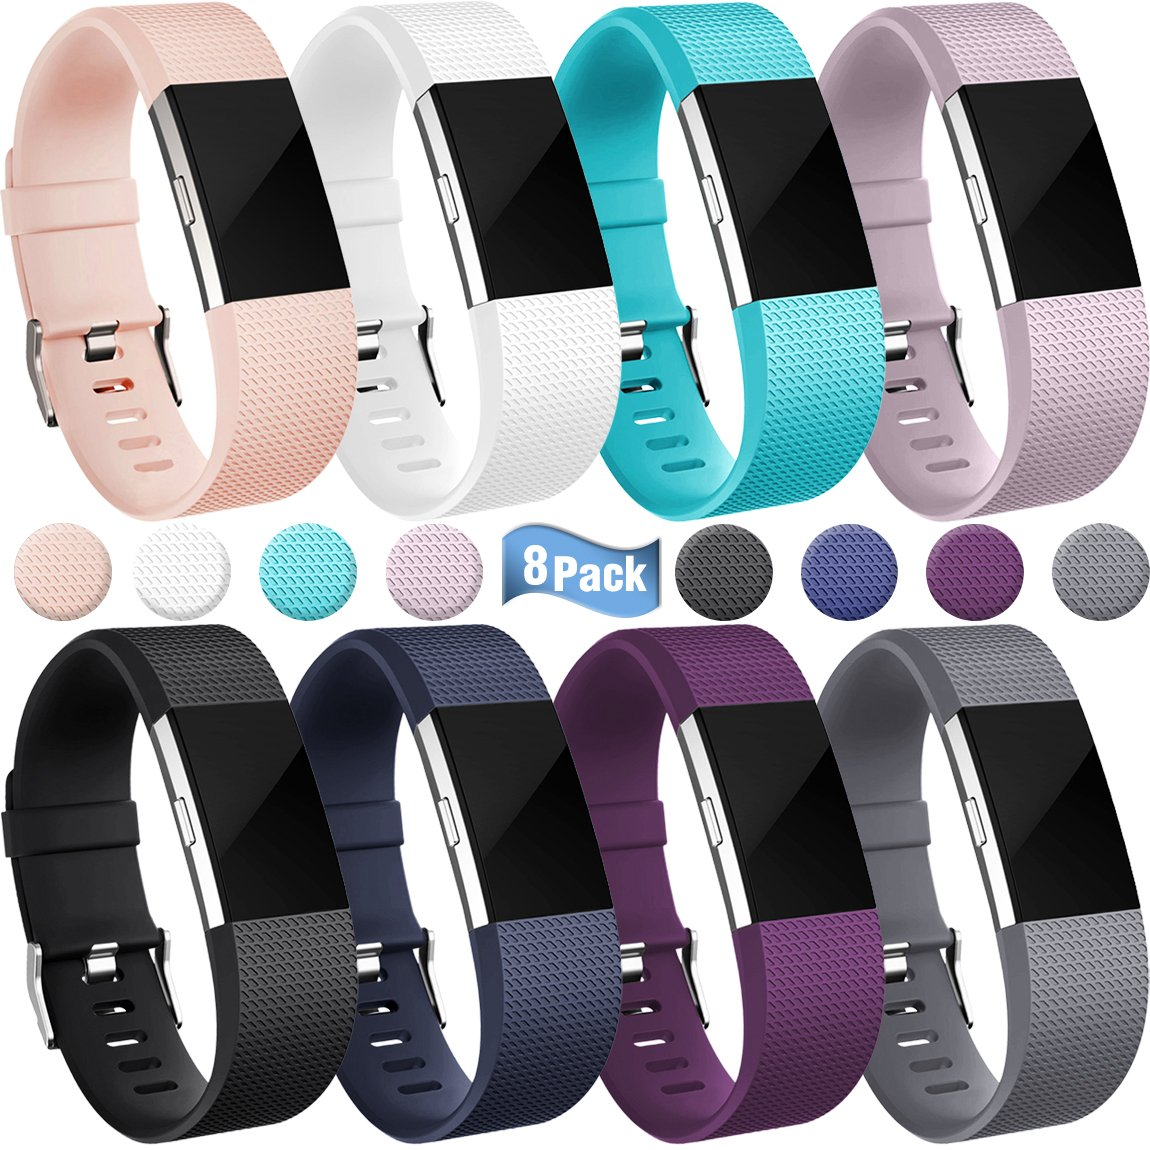 Maledan For Fitbit Charge 2 Bands, Replacement Accessory Wristbands for Fitbit Charge 2 HR, Small